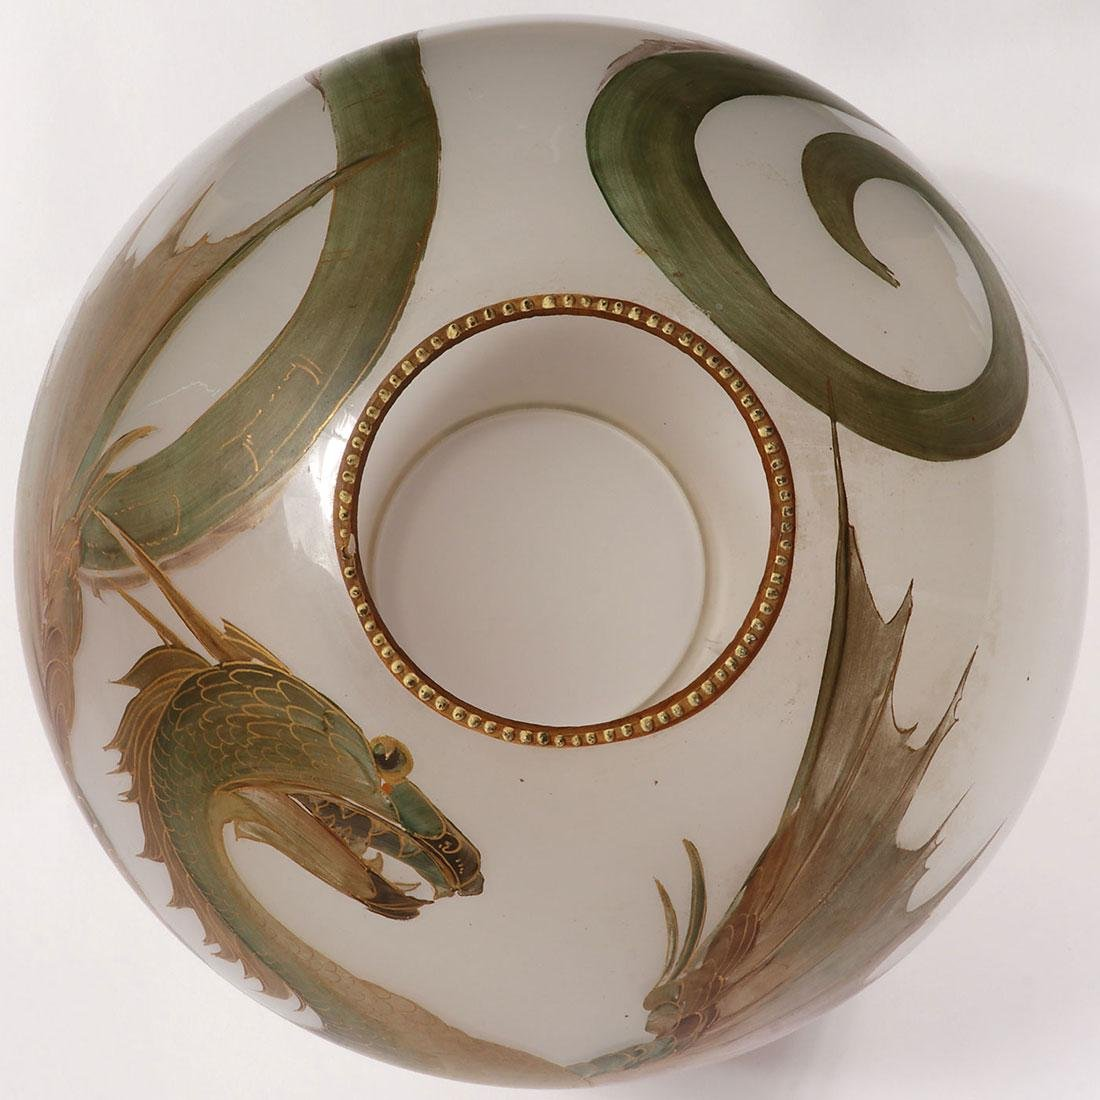 A FAIENCE OIL LAMP WITH DRAGON GLOBE 19TH C. - 5